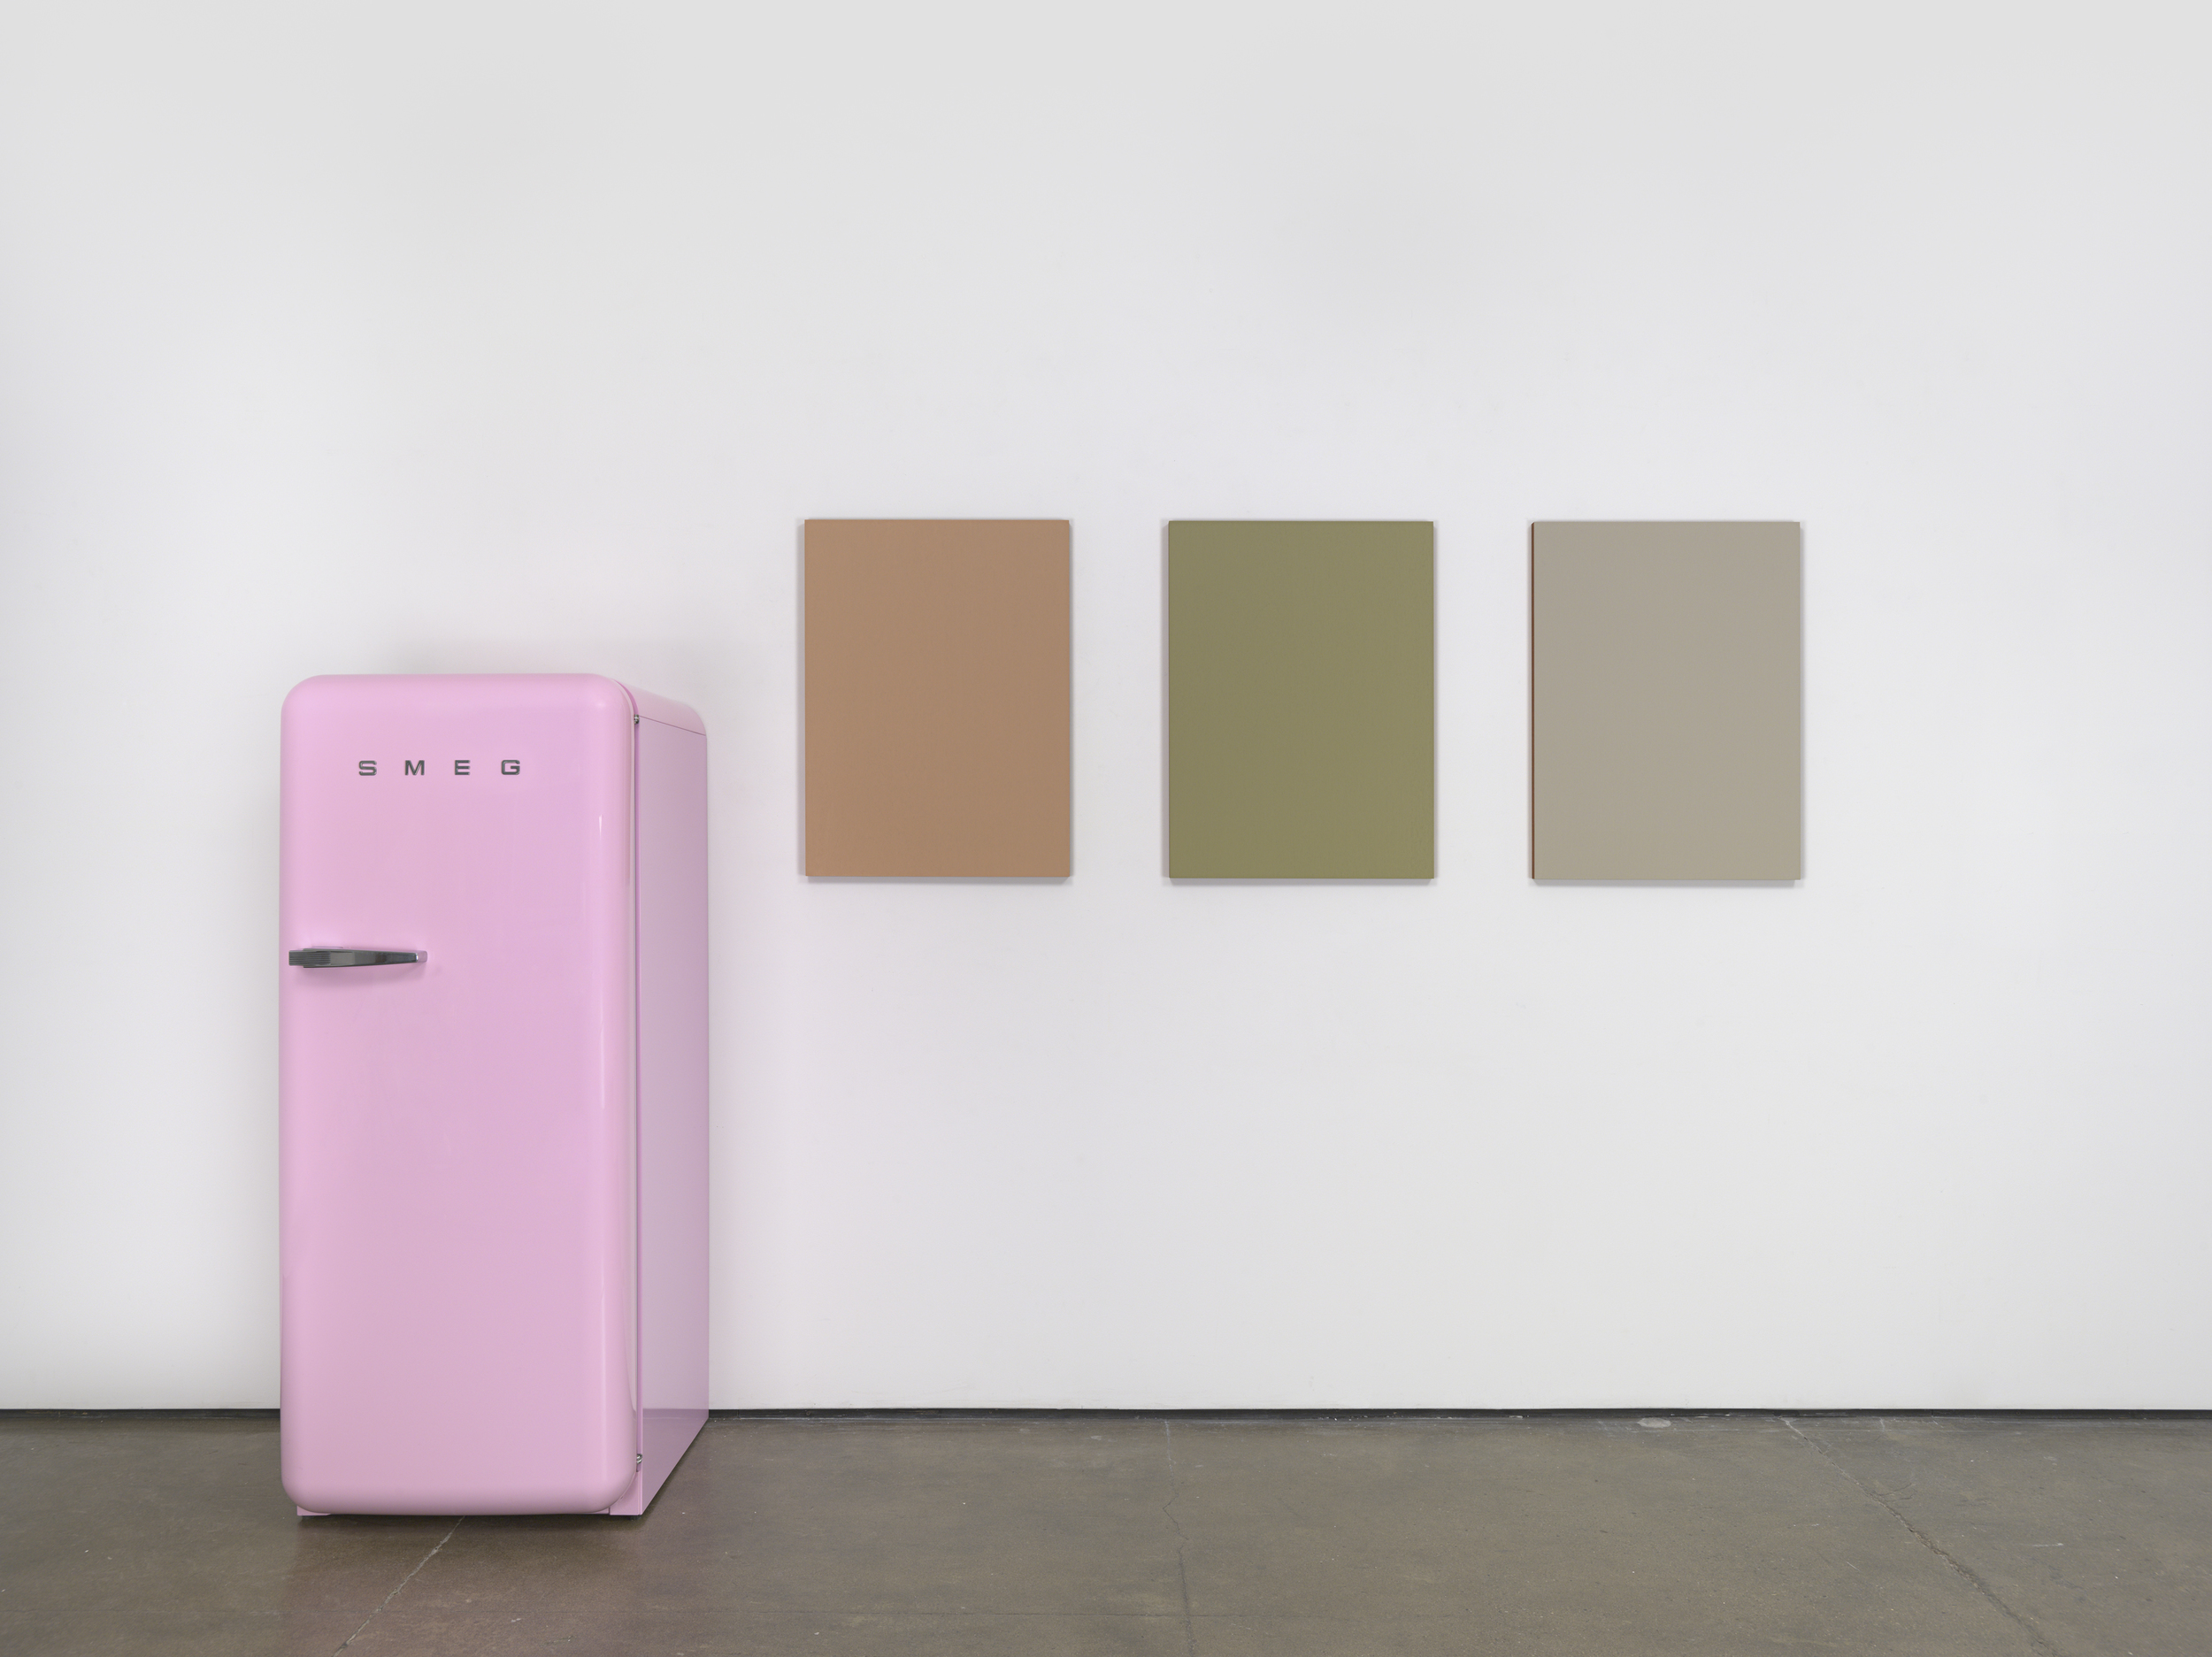 Image Above: ©Sherrie Levine, Pink SMEG Refrigerator and Renoir Nudes, 2016 / Courtesy David Zwirner, New York